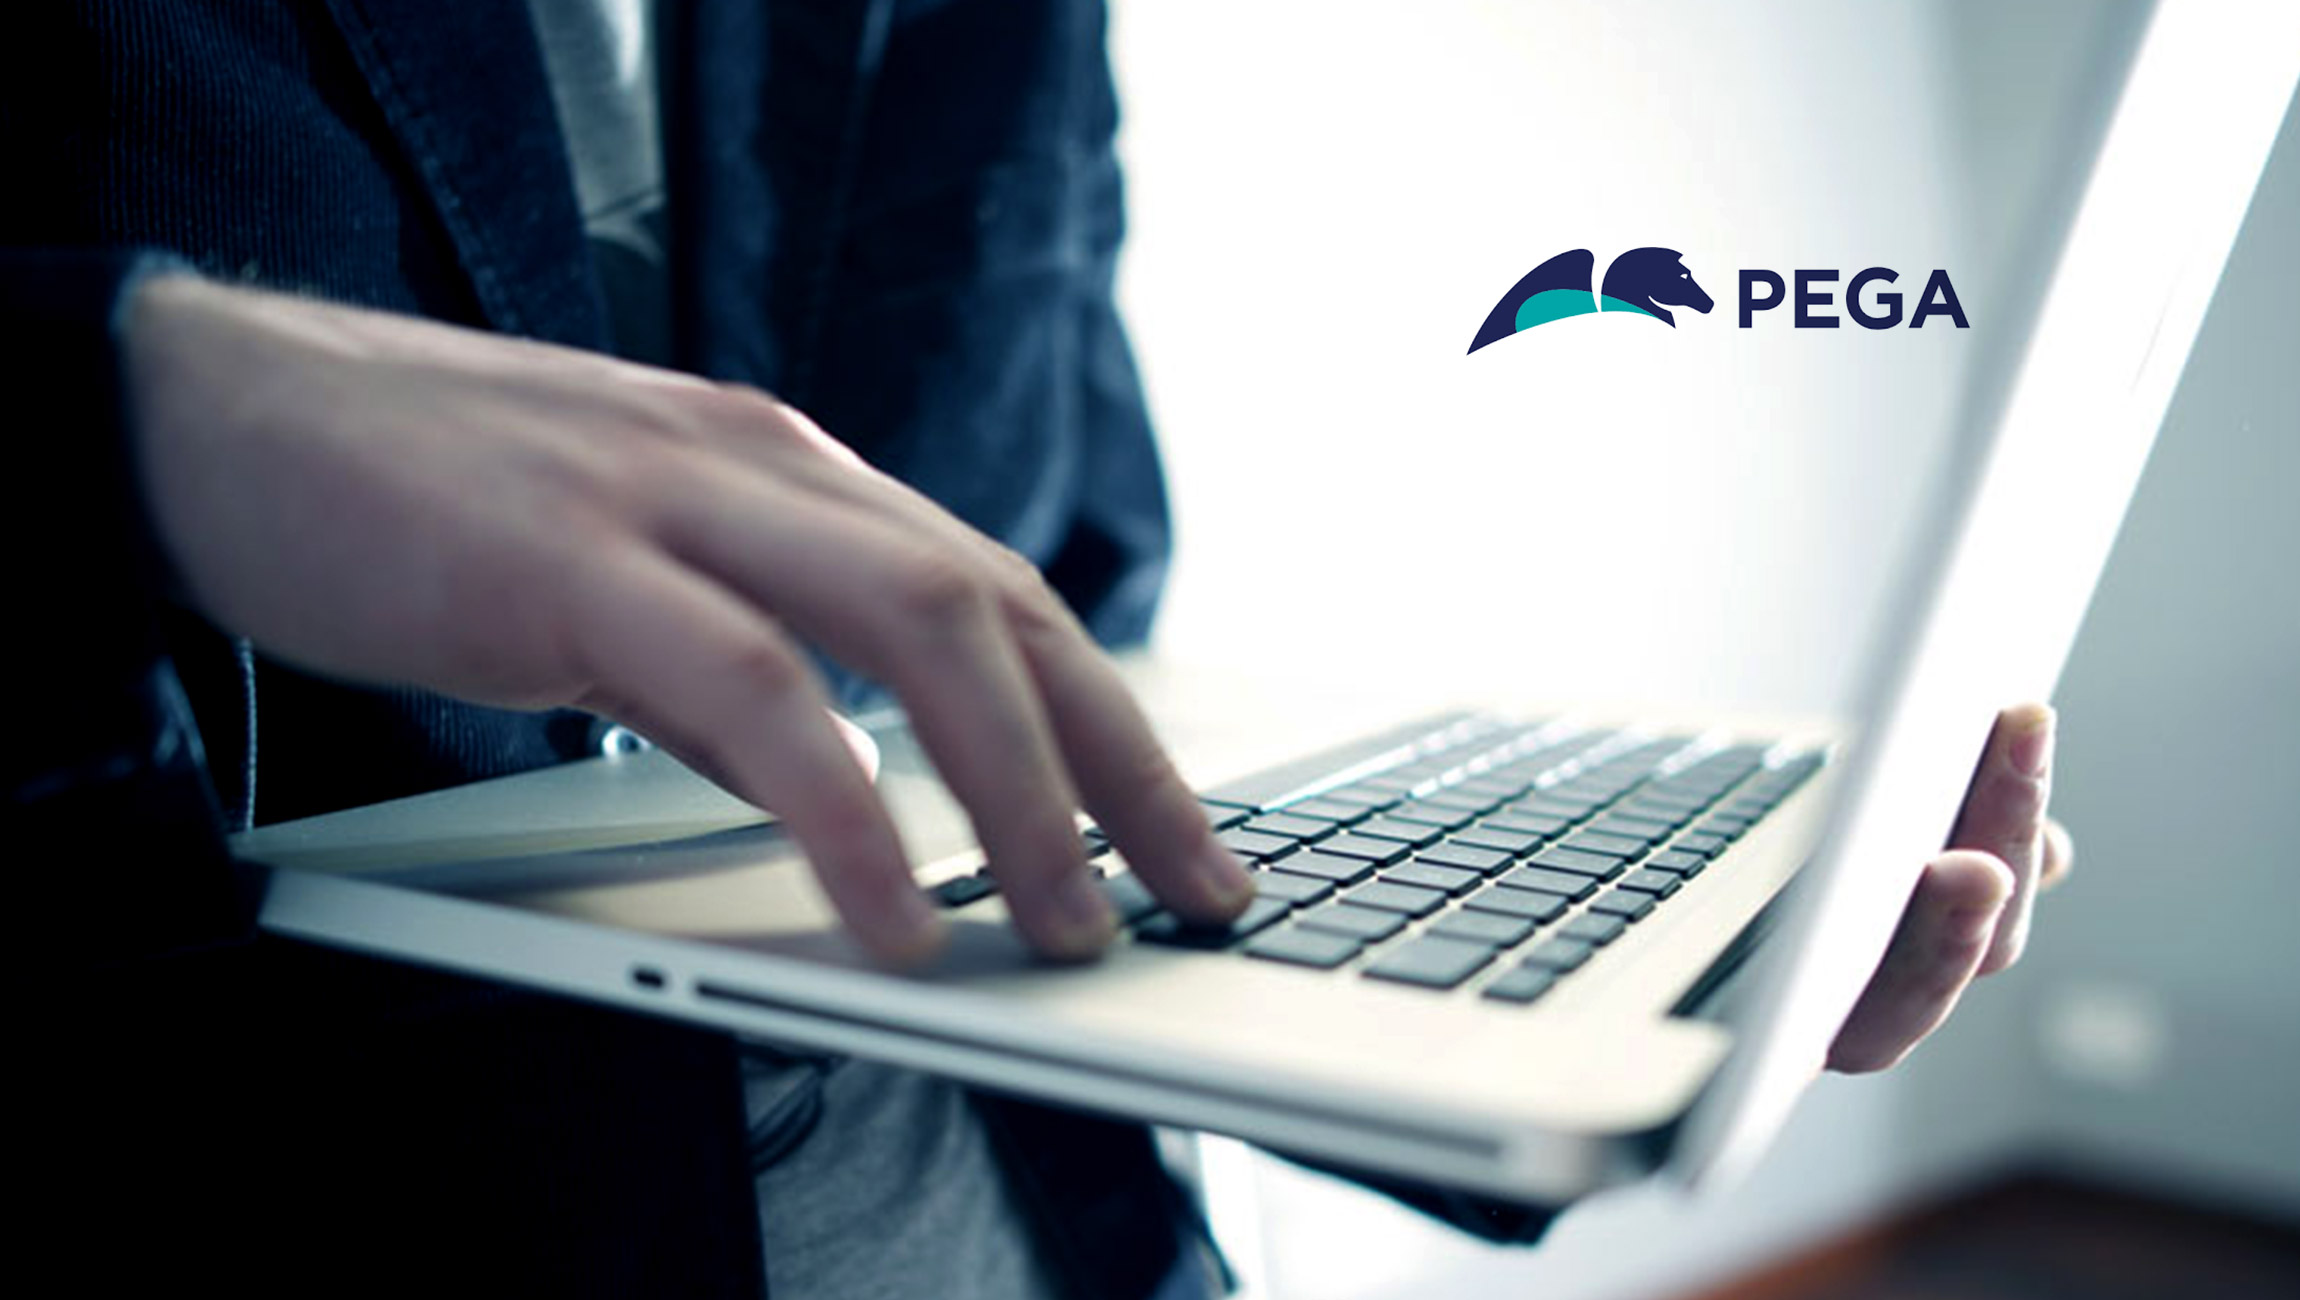 Pegasystems Acquires Leading Digital Messaging Platform Provider In The Chat